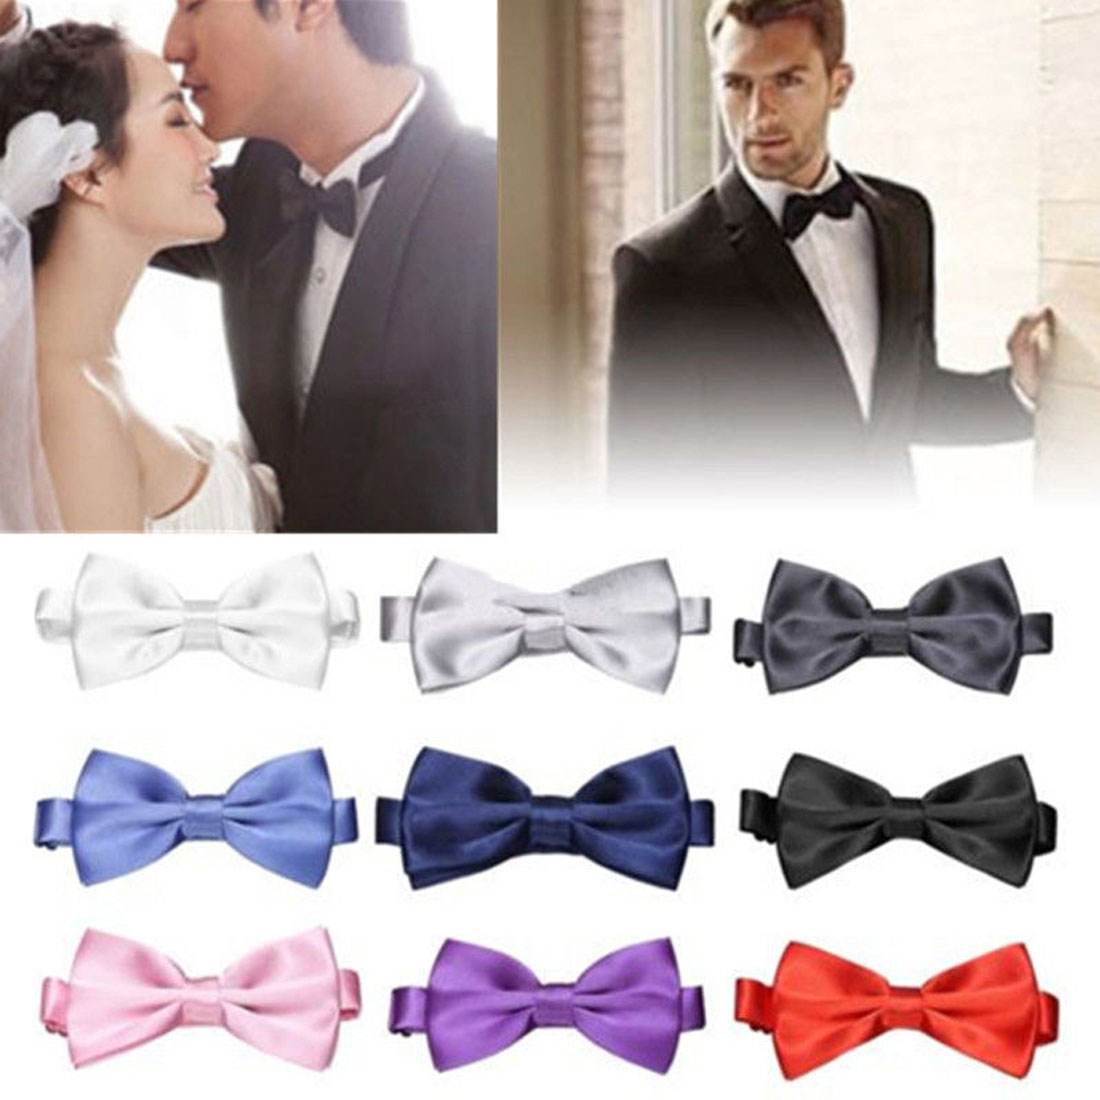 Brand Ties For Men Fashion Bow Tie Tuxedo Classic Mixed Solid Color Butterfly Wedding Party Bowtie Bow Tie Men Accessories Black